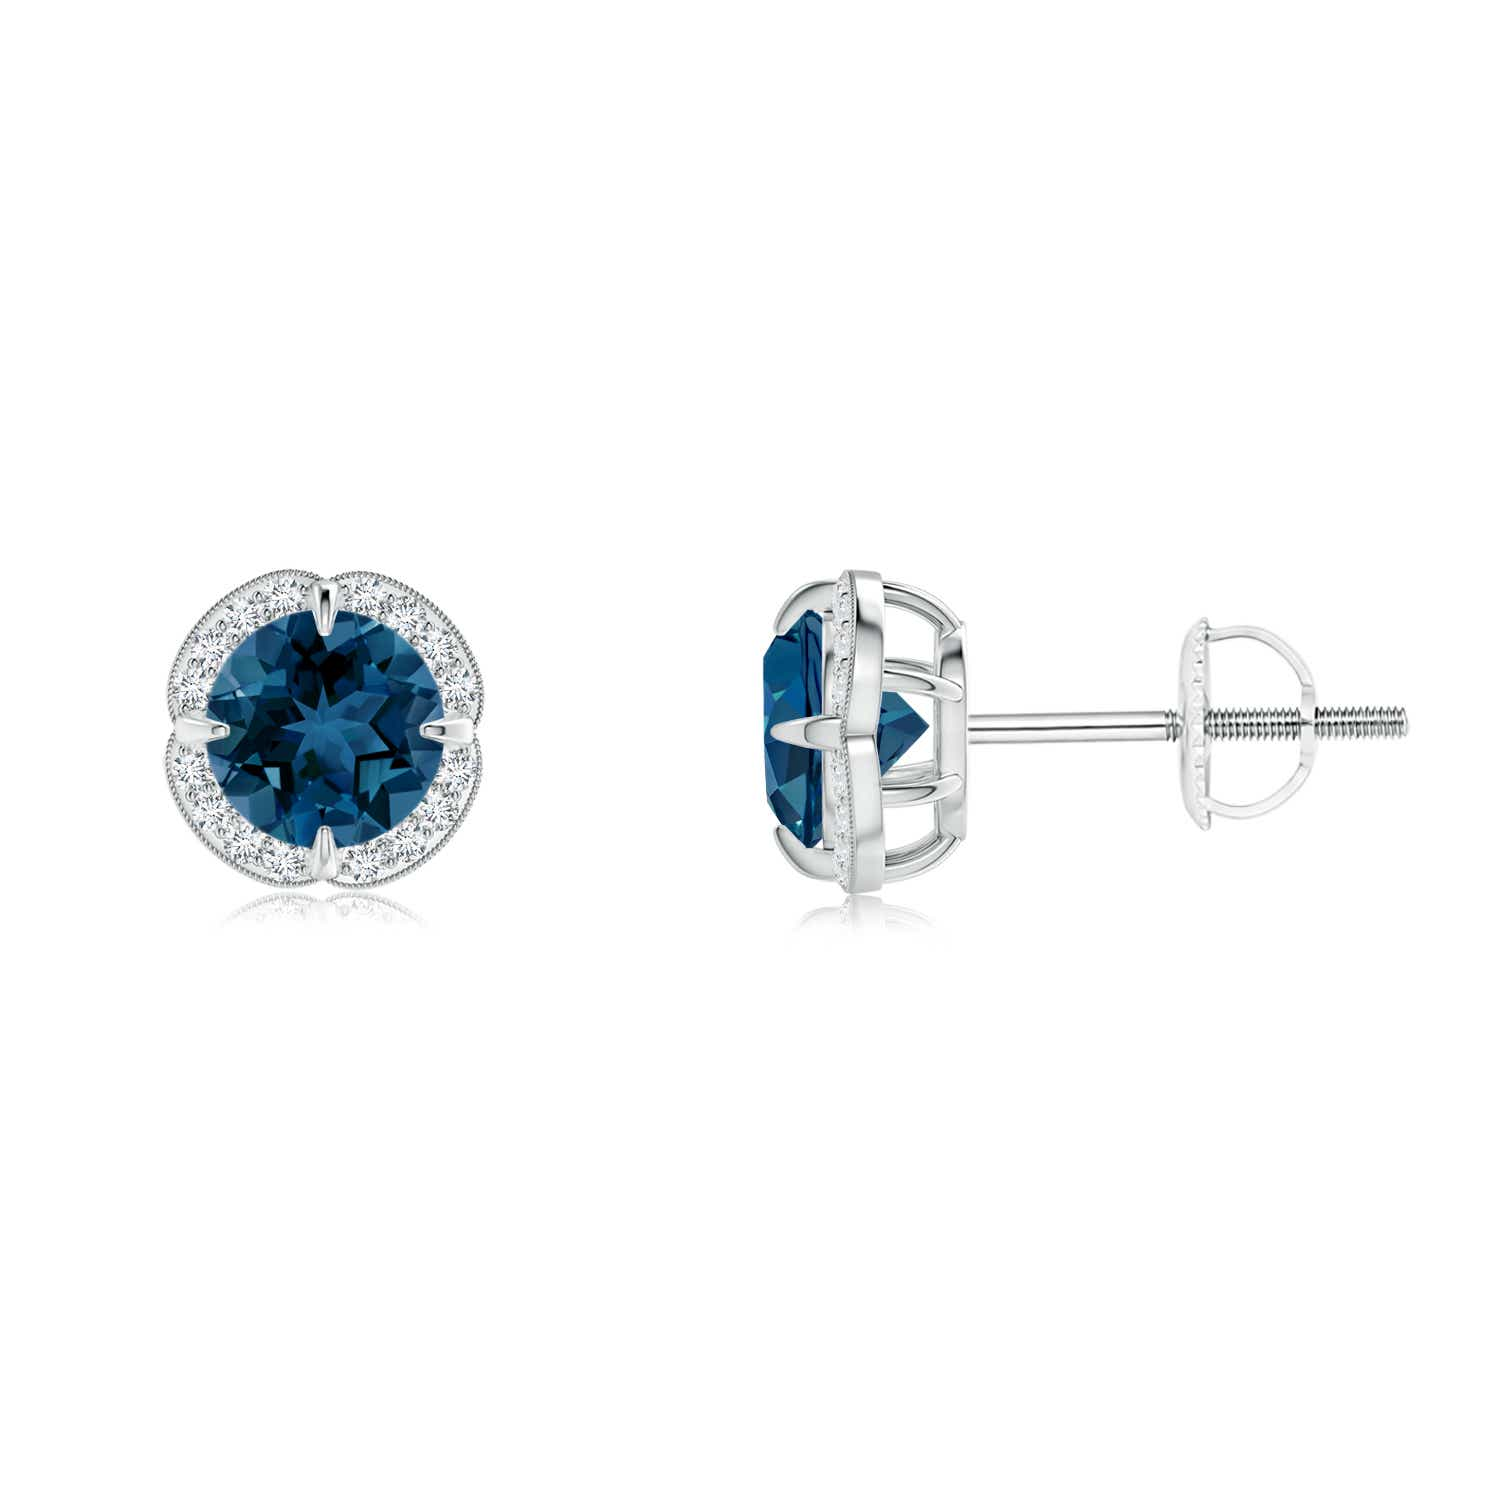 Angara London Blue Topaz Stud Earrings Platinum sipcEKlNZ